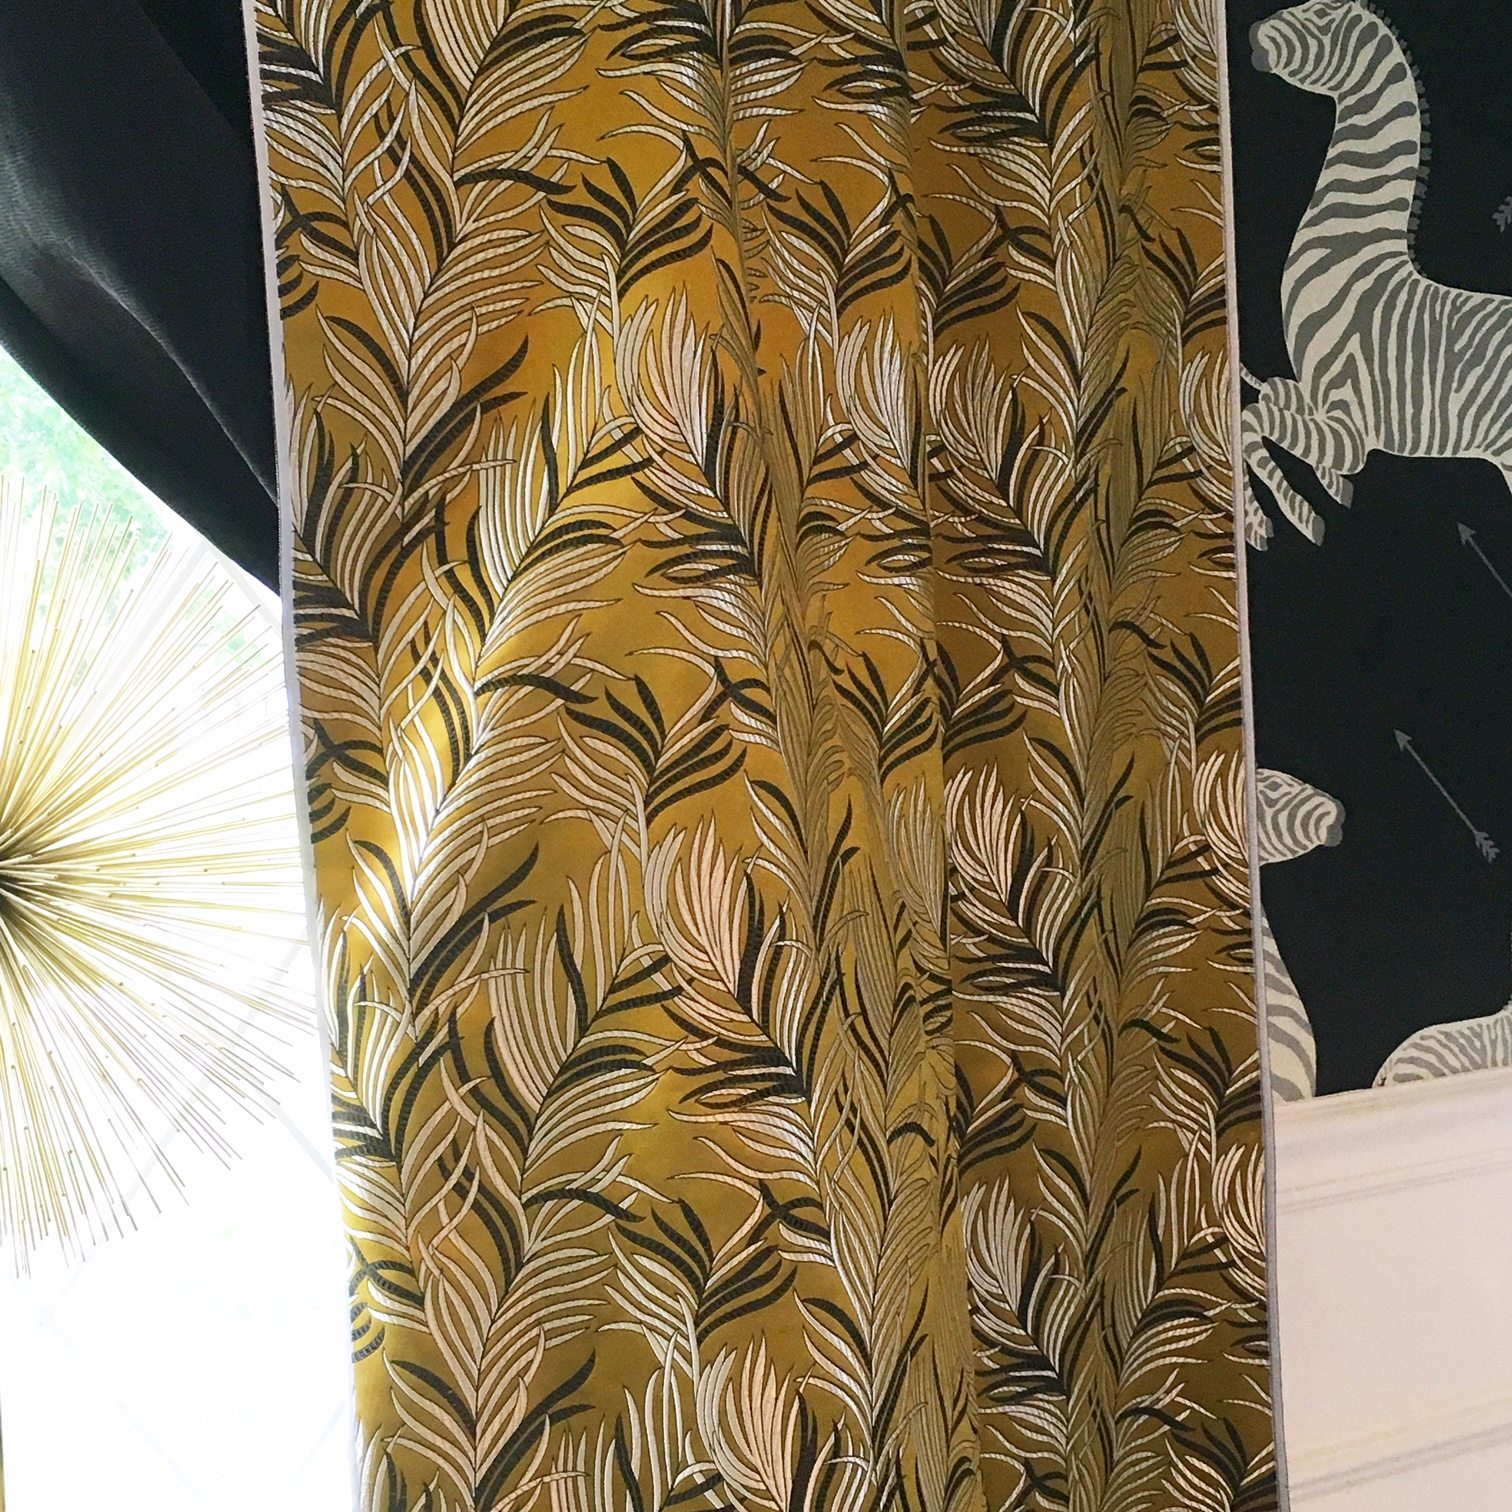 I loved the texture of the metal starburst, chartreuse brocade with metallic print curtains and the wallpaper with metallic finishes in the zebra's stripes.